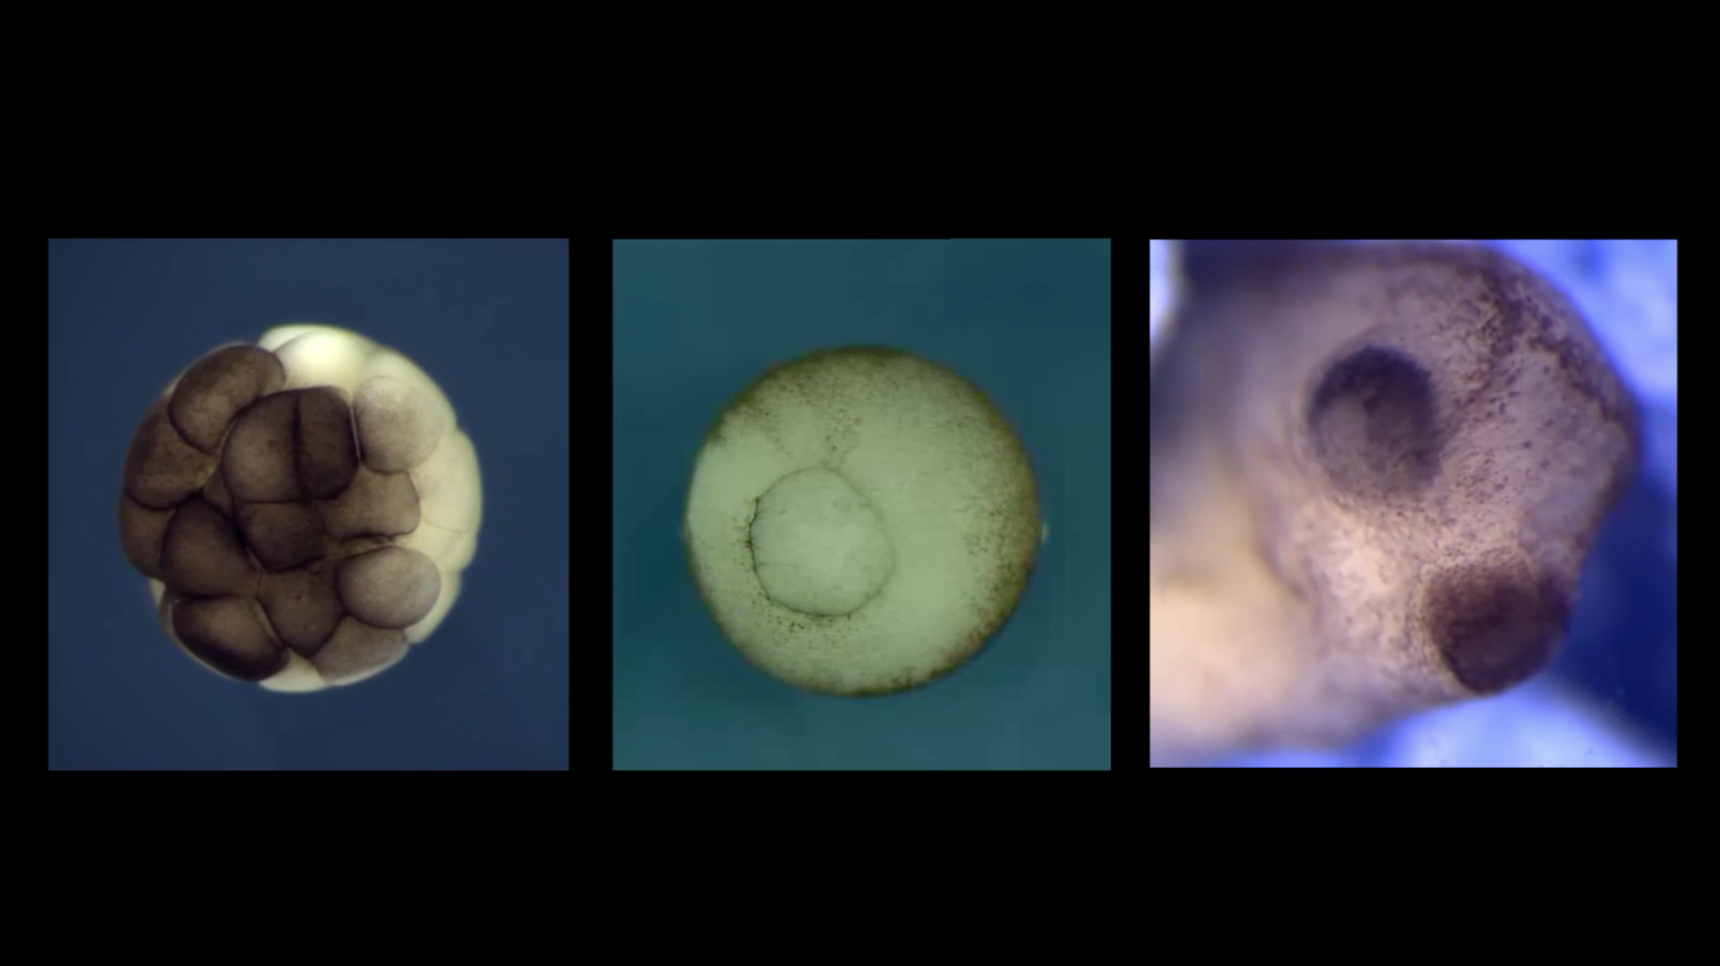 Video: These time-lapse videos reveal various stages of development for a frog. In the first one, the single cell of a fertilized egg divides over and over to produce an embryo that is a ball of cells. In the second video, the embryo begins to develop more of a body plan: Openings turn the hollow ball of cells into a tube, and tissues fold over to create a neural tube, the precursor of the central nervous system. The third video shows a close-up of the embryonic frog's face as the eyes begin to take shape.